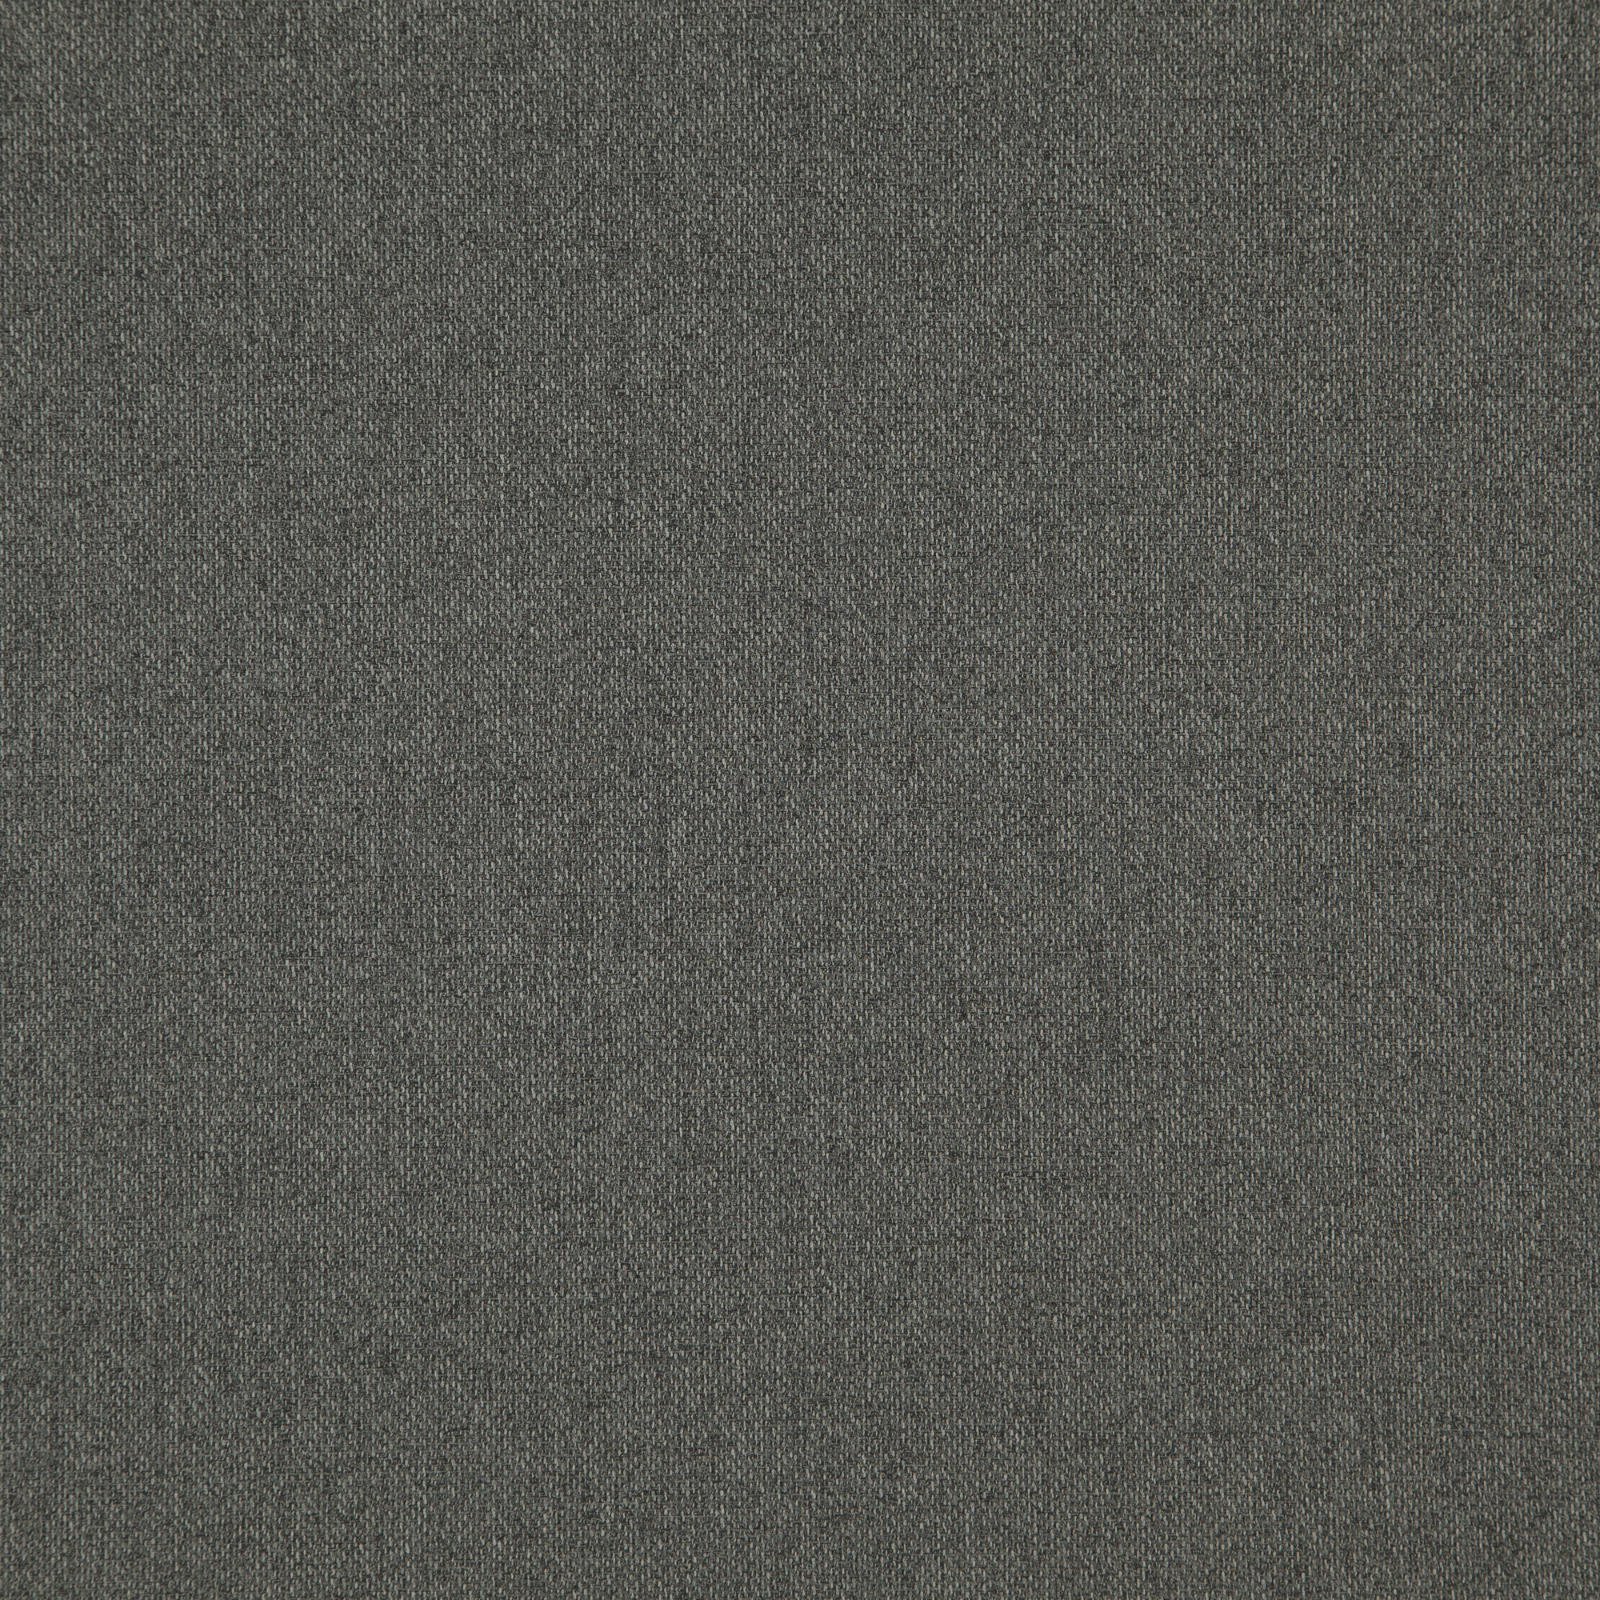 Ampersand Pinecone  100% Polyester  Approx. 145cm | Plain  Upholstery 100,000 Rubs  Flame Retardant | Water Repellant